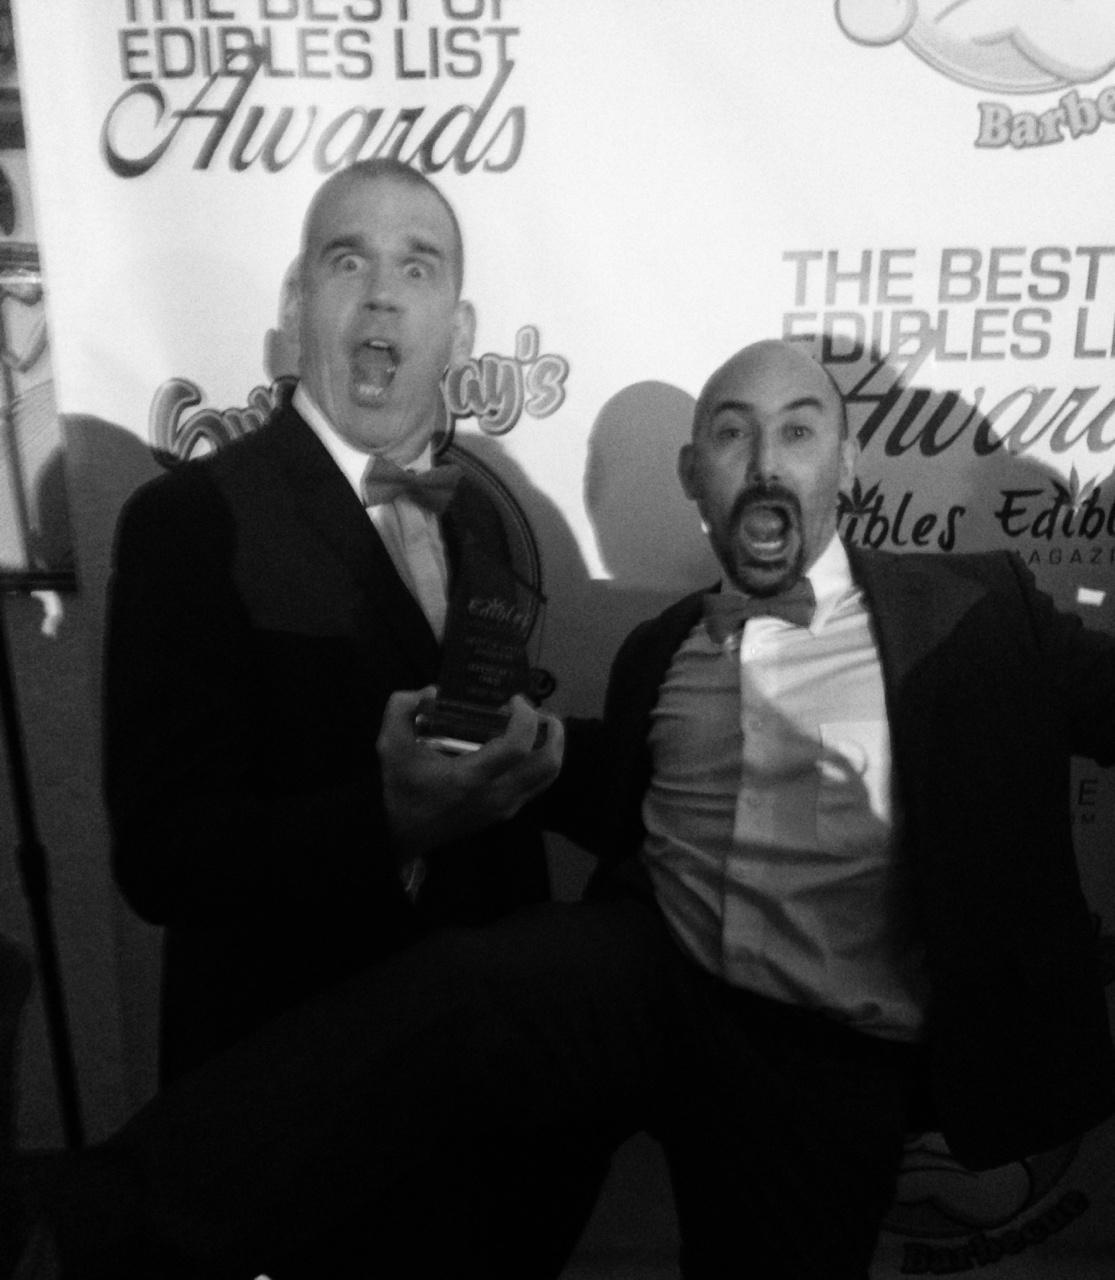 Billy and Dan, upon winning 1st Place Edible of the Year in the Tea category by Edibles Magazine, January 2017.